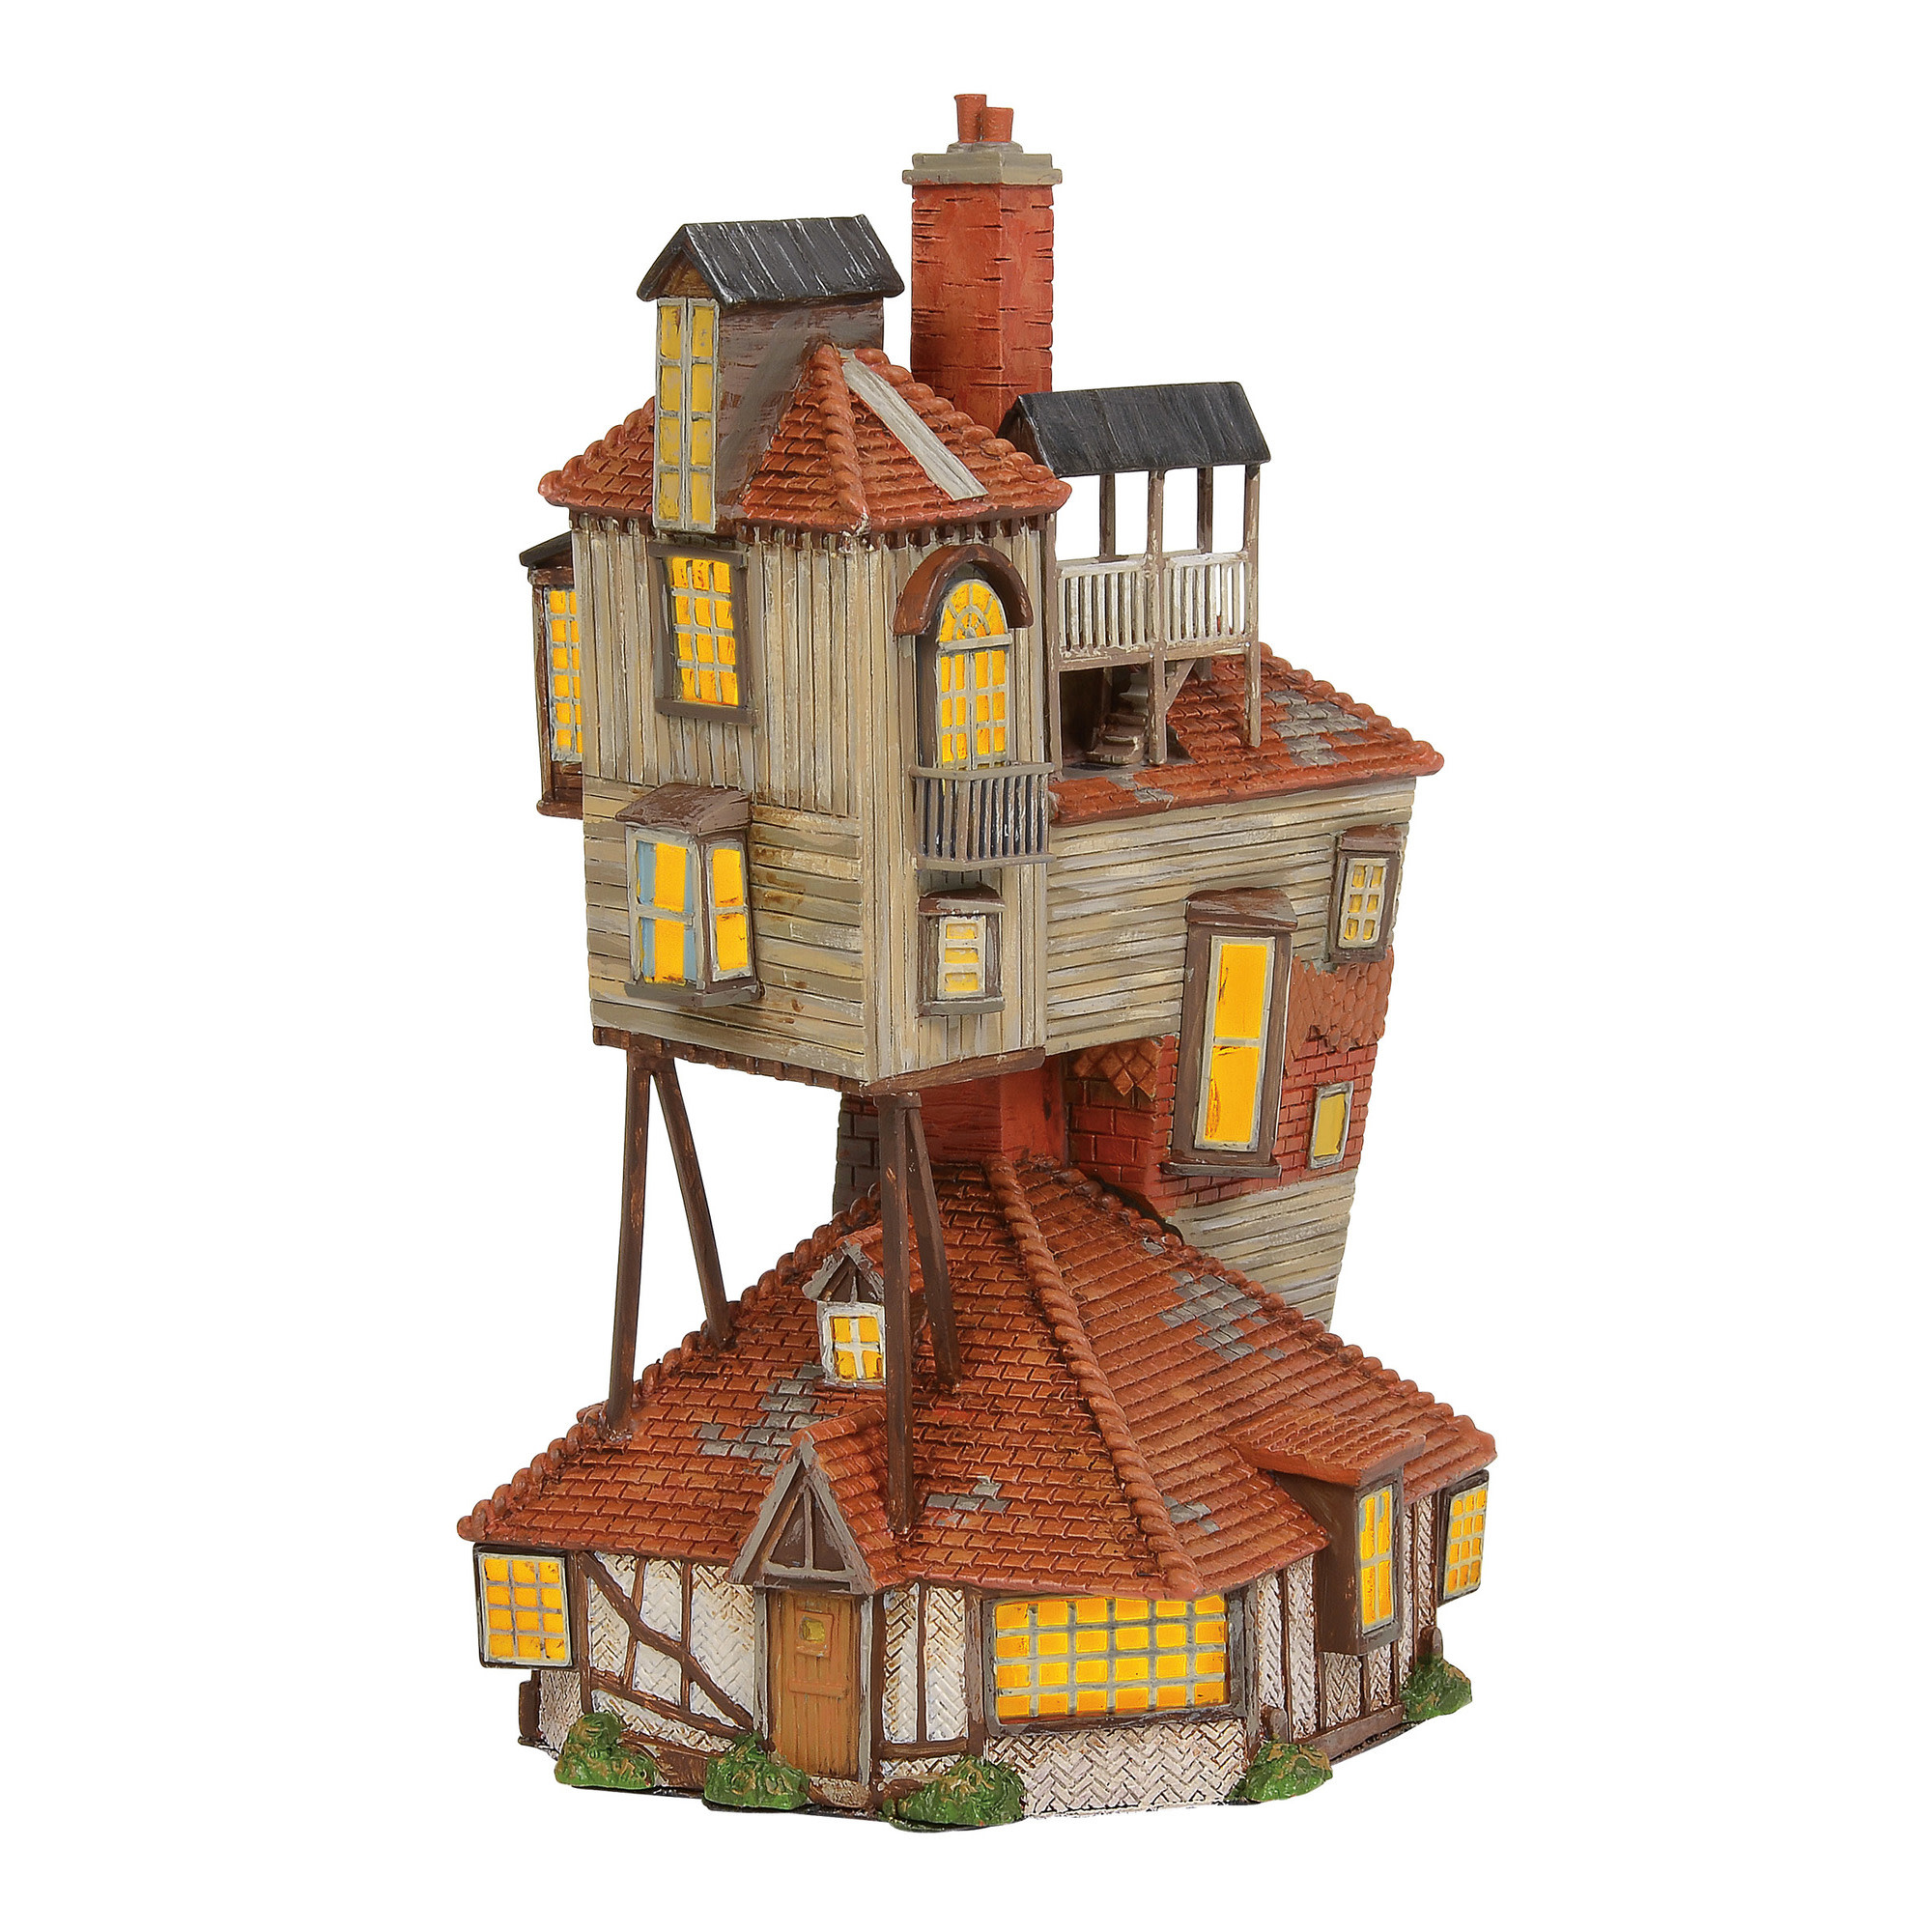 Department 56 Harry Potter Village The Burrow